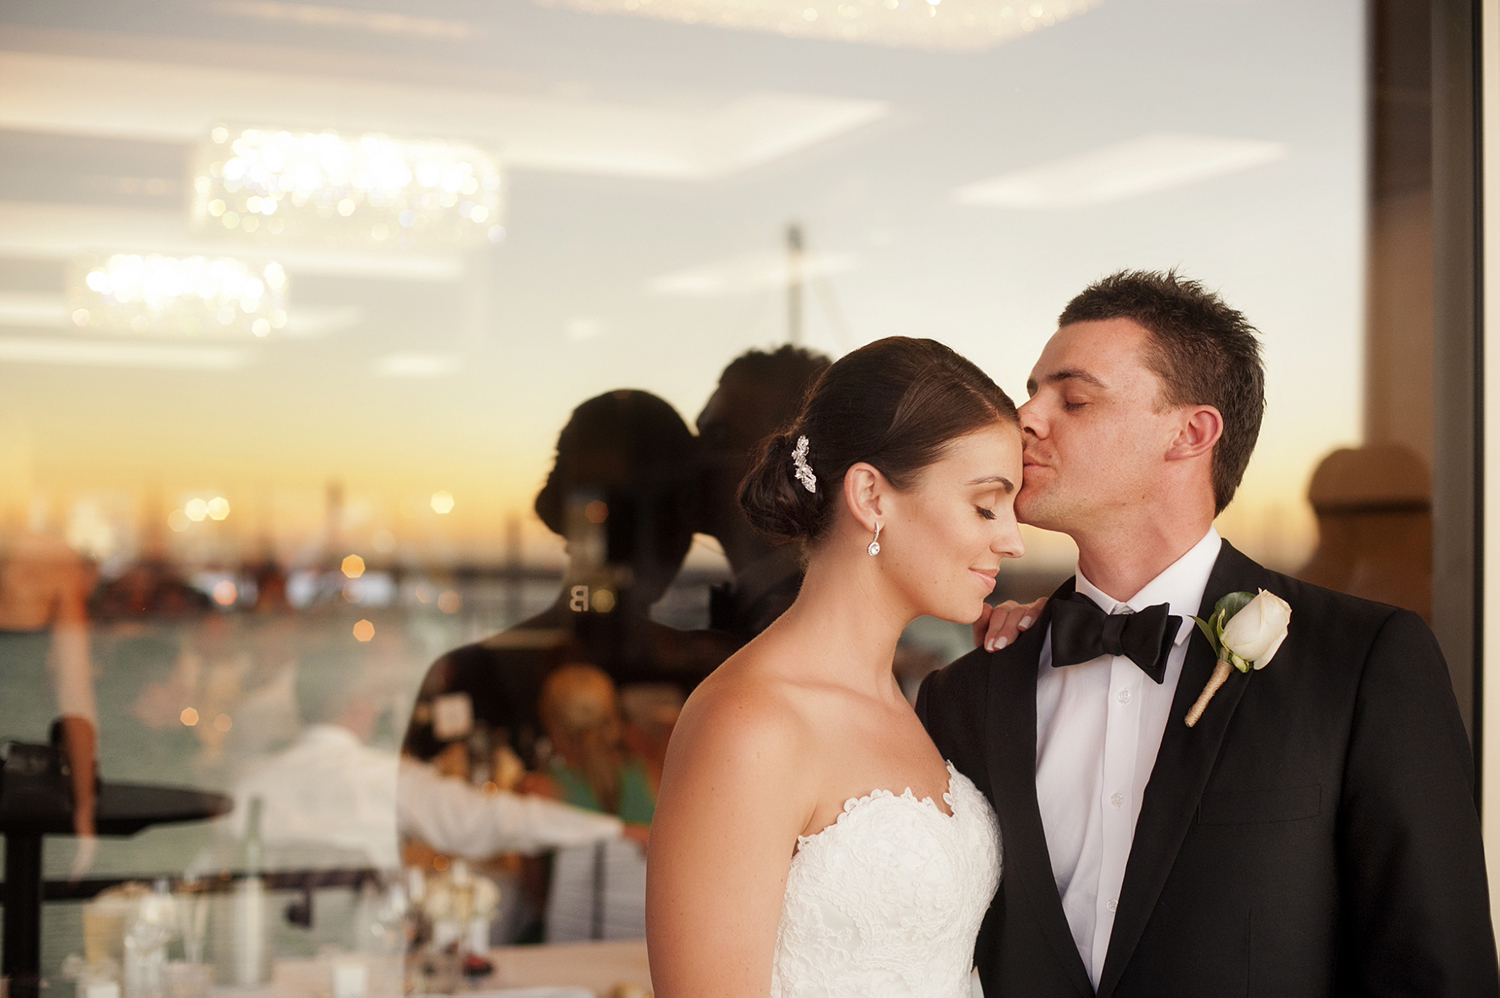 bride and groom at sunset on balcony breakwater perth wedding